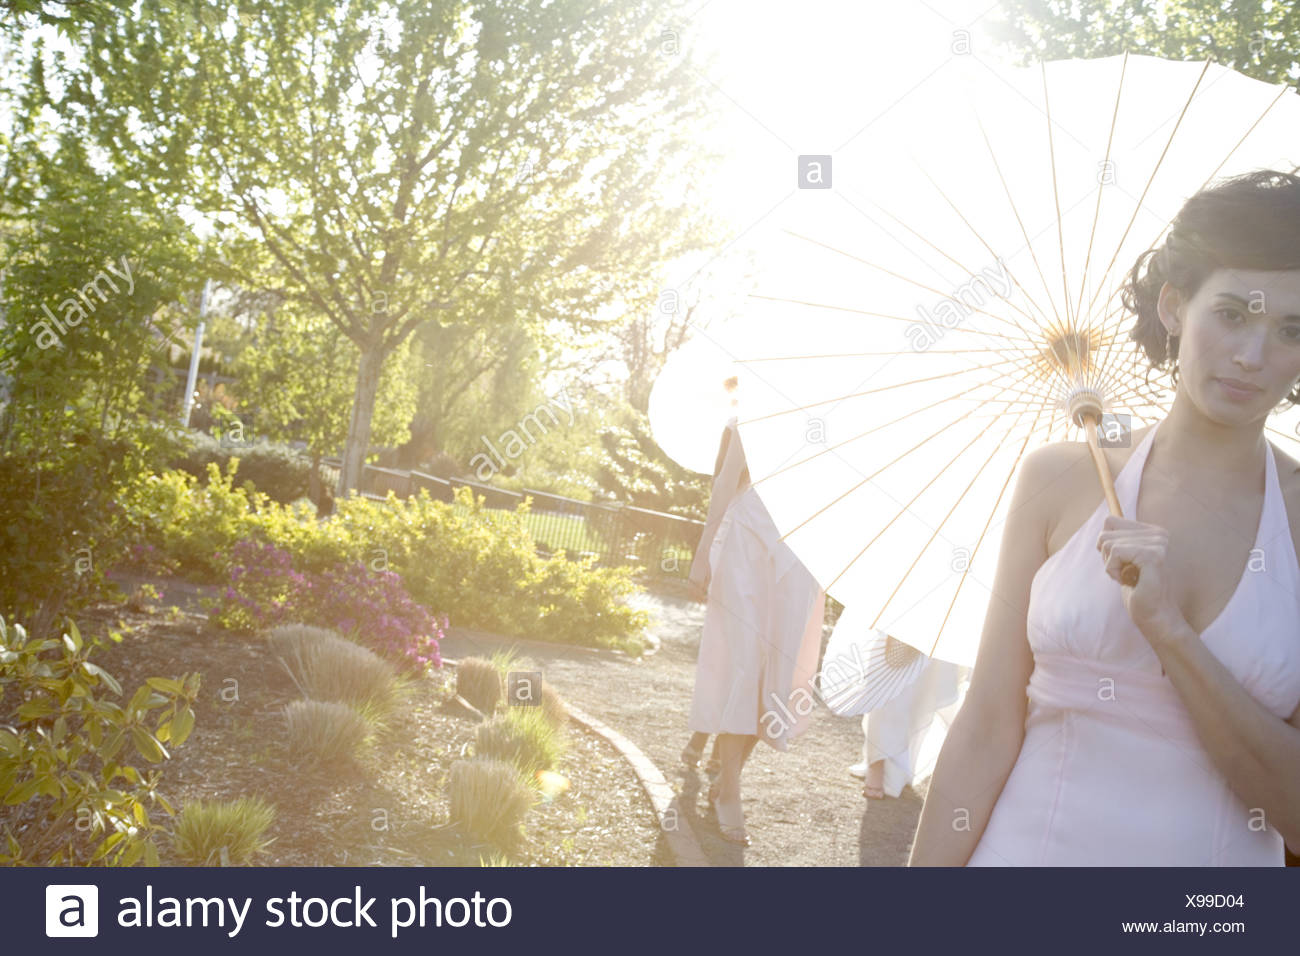 Wedding Umbrella Photos Wedding Umbrella Images Alamy